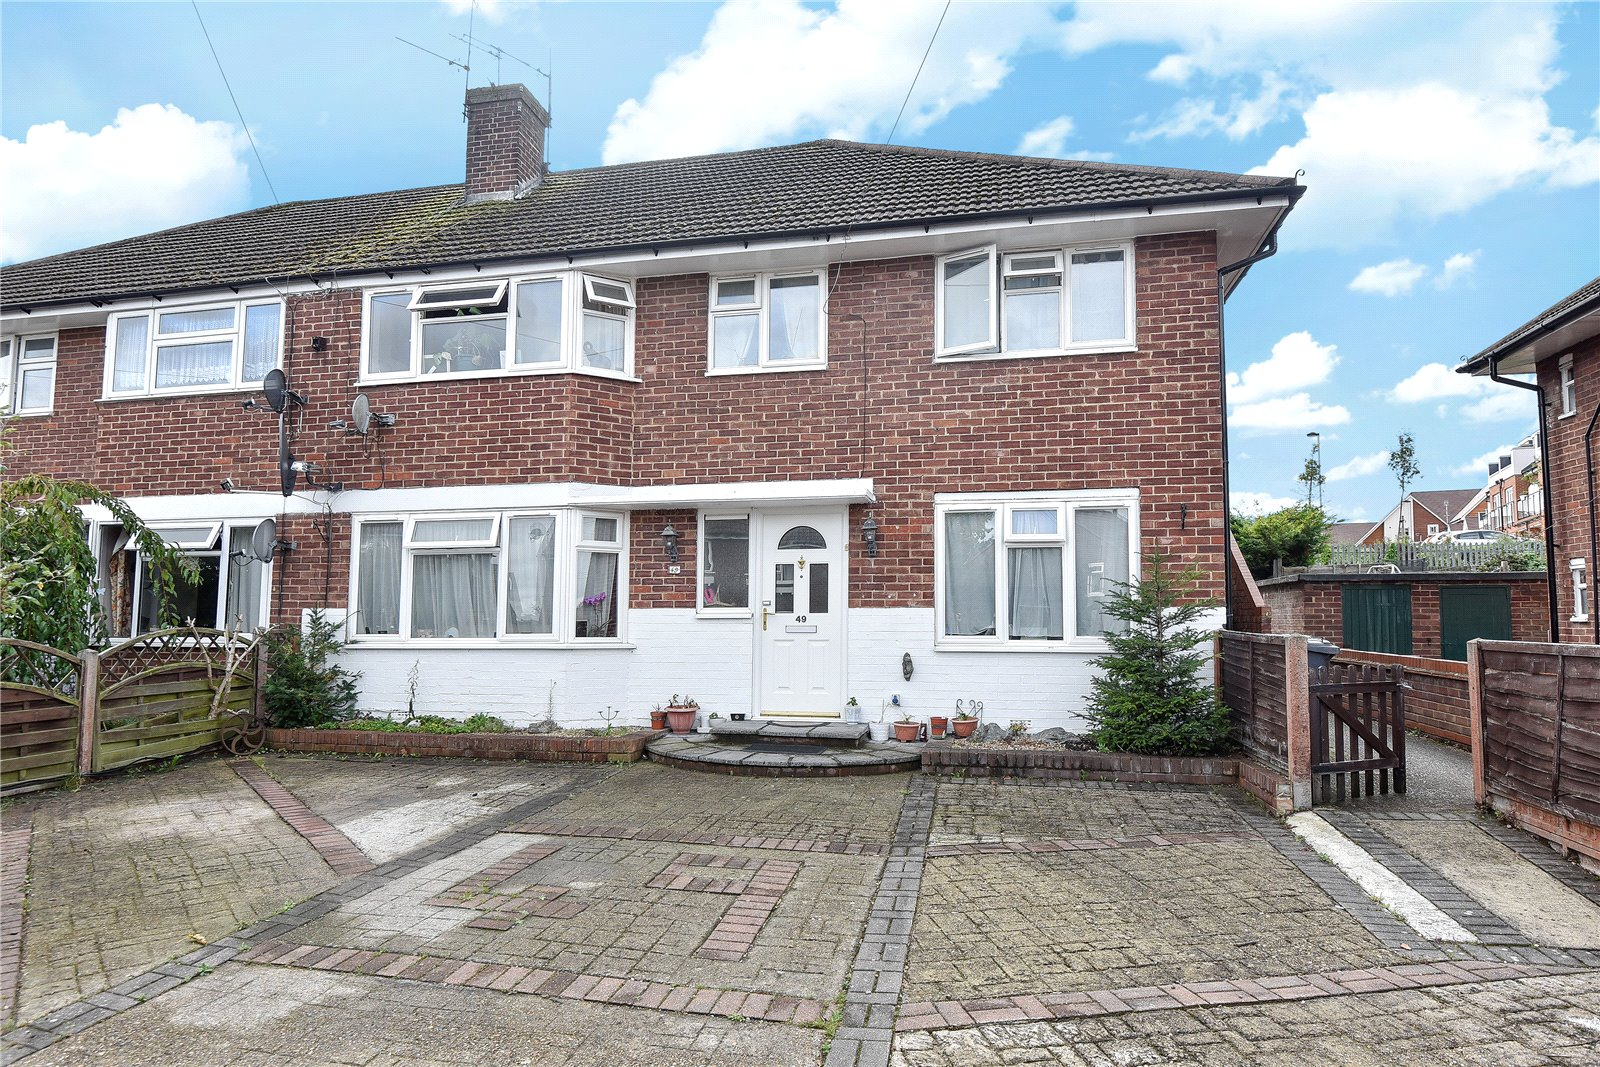 2 Bedrooms Maisonette Flat for sale in Whurley Way, Maidenhead, Berkshire, SL6